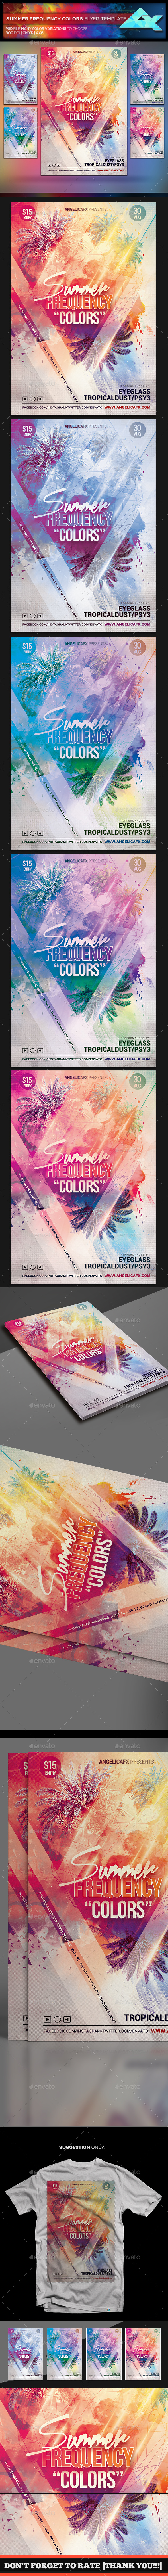 Summer Frequency Colors Flyer Template - Events Flyers